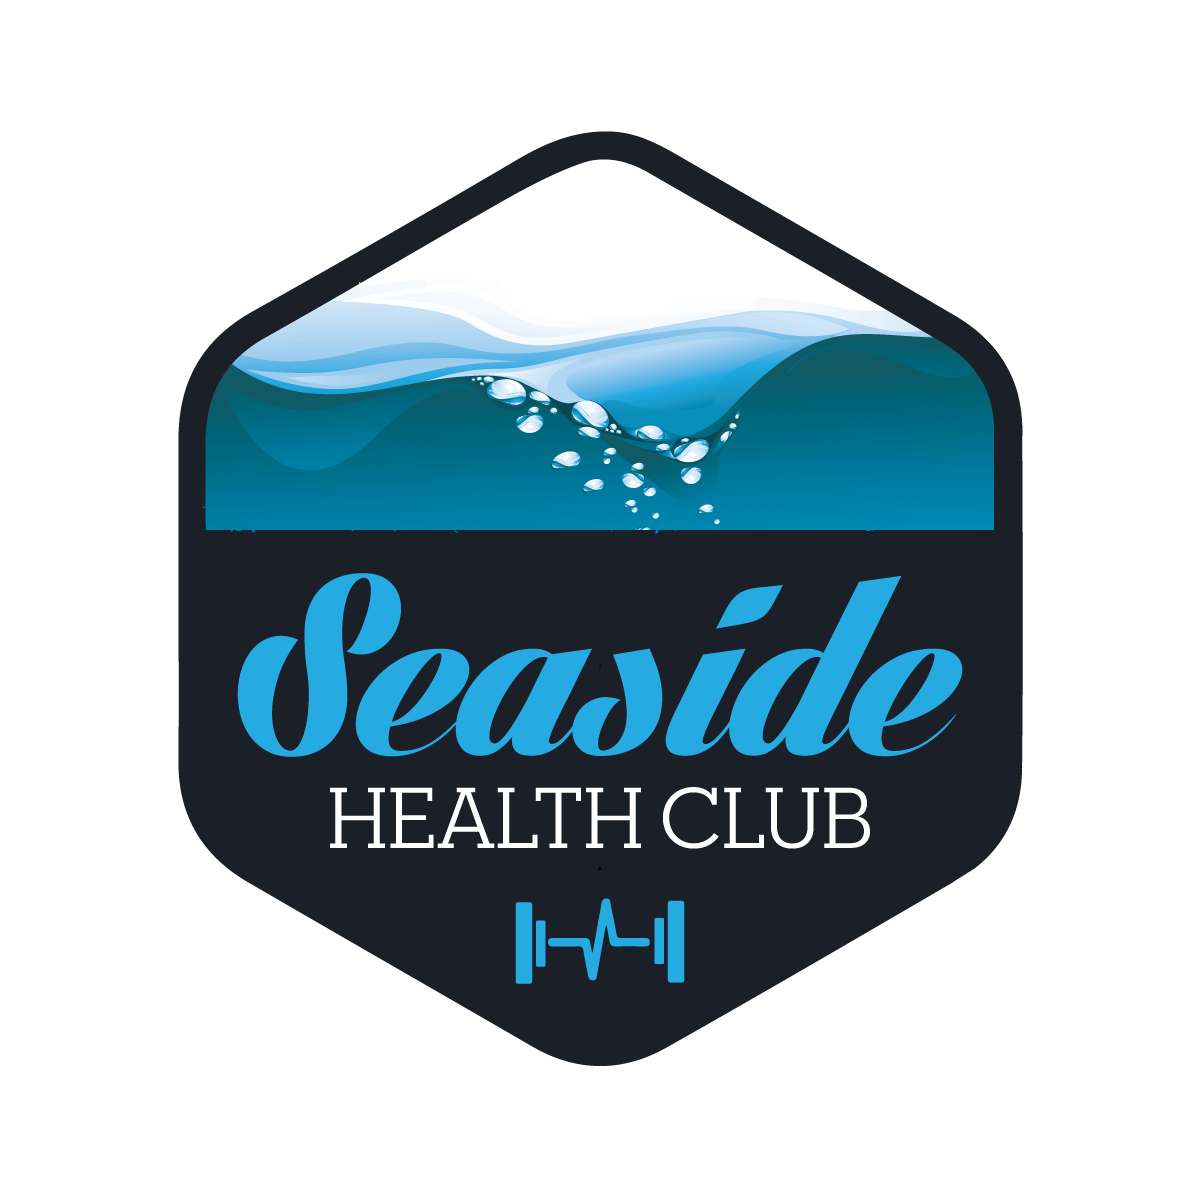 Seaside_logo.png